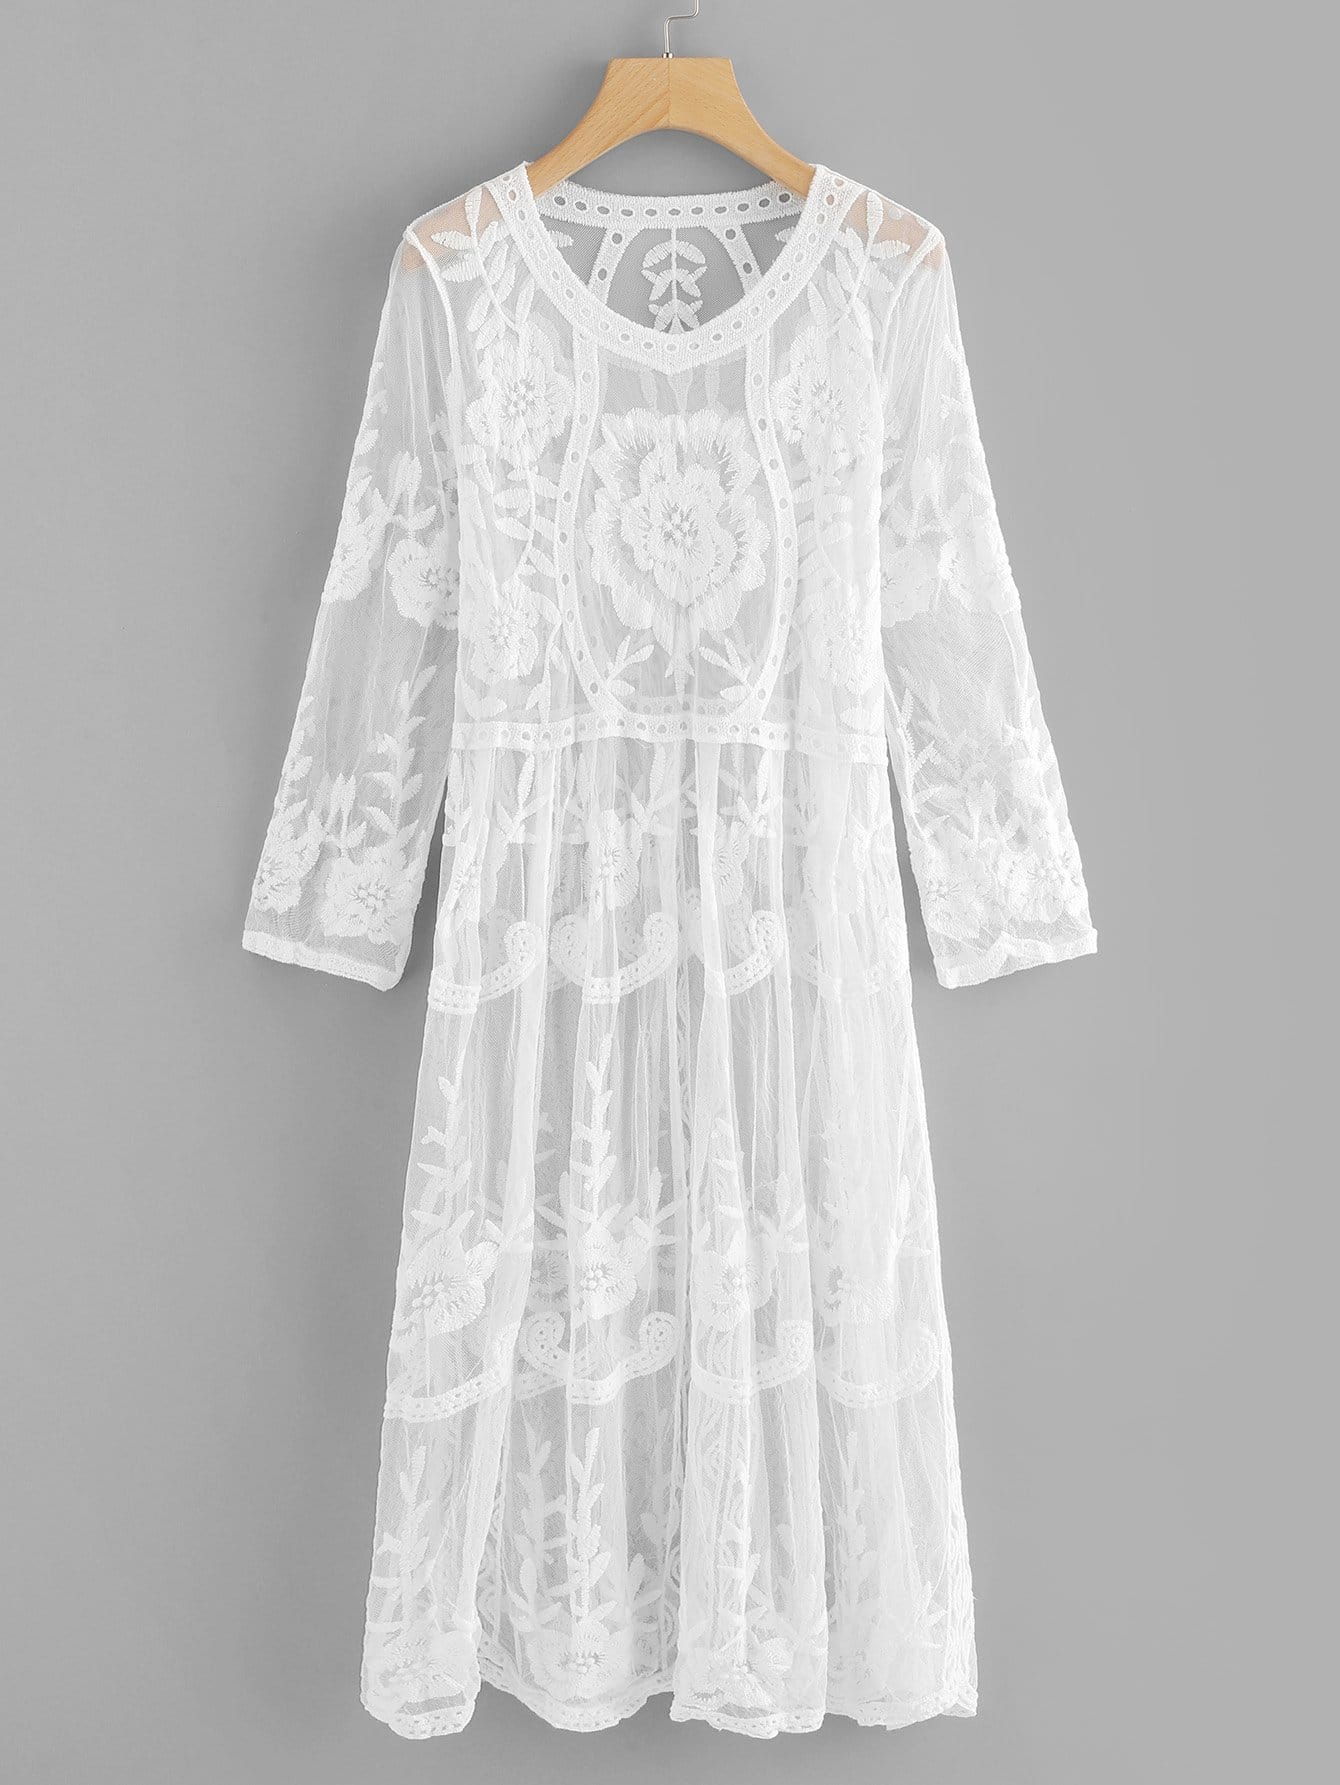 Floral Embroidered Sheer Lace Dress floral lace sheer top